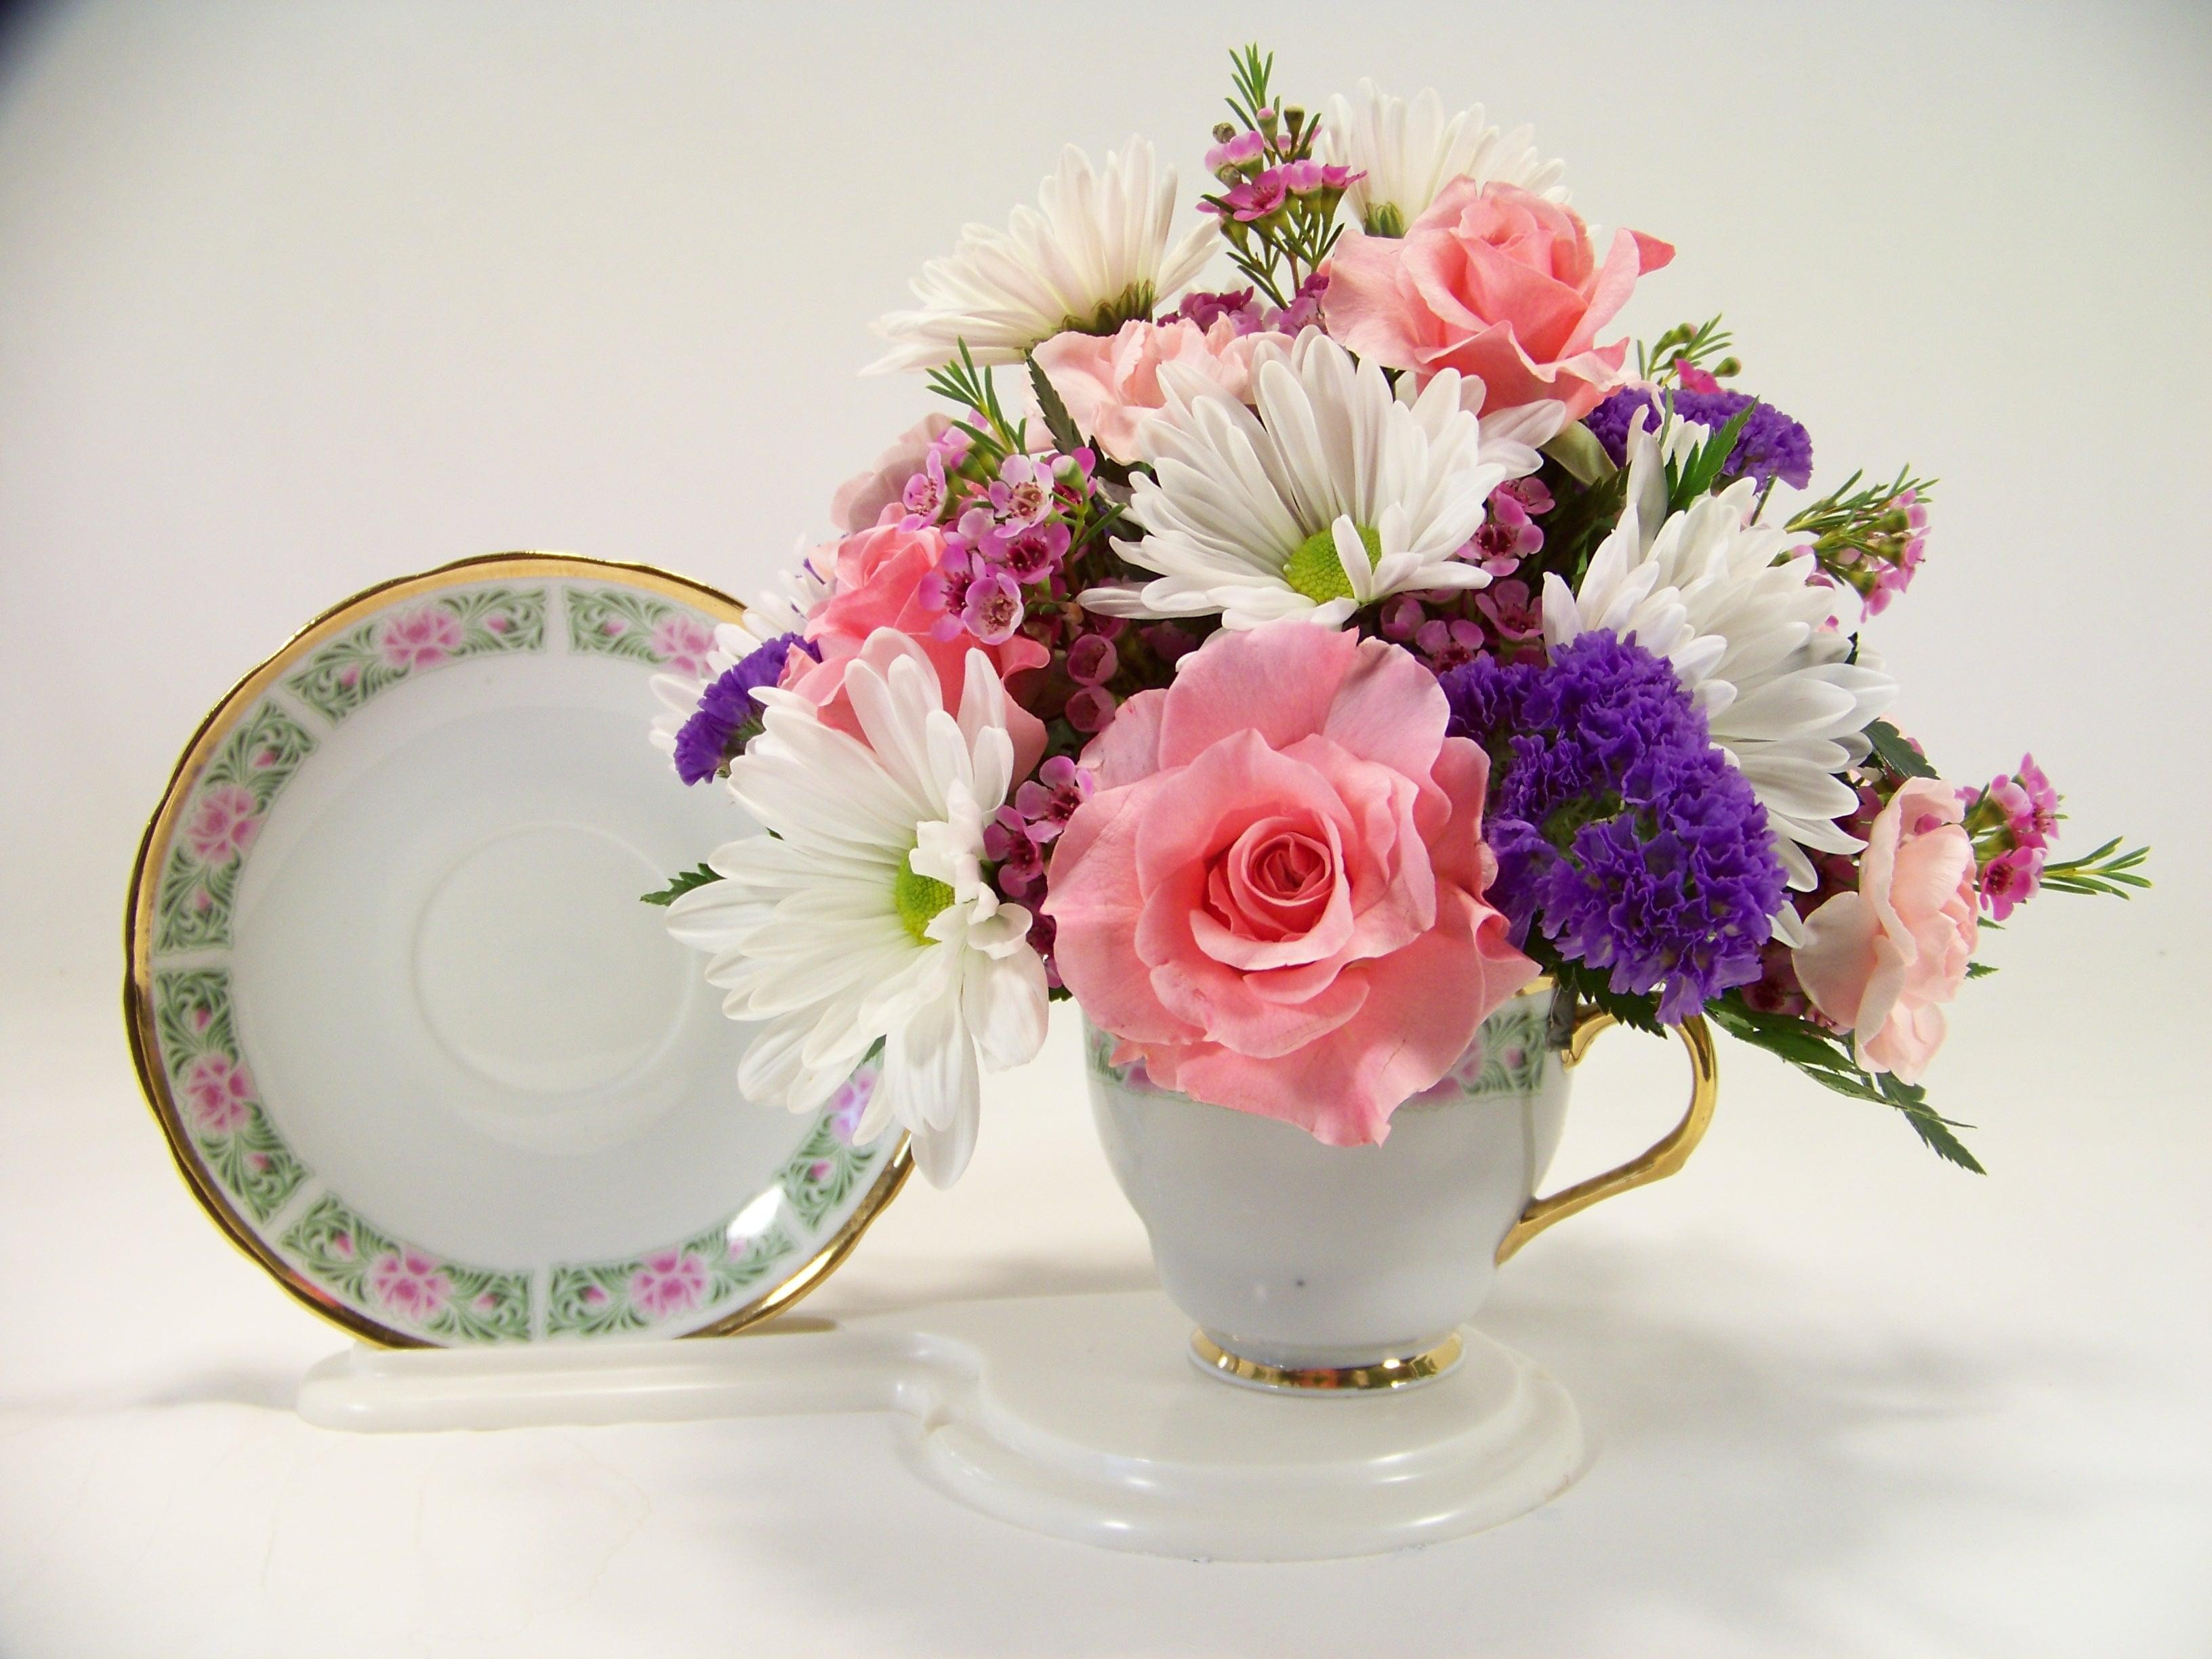 Old Fashioned Tea Cup Arrangement for Mom